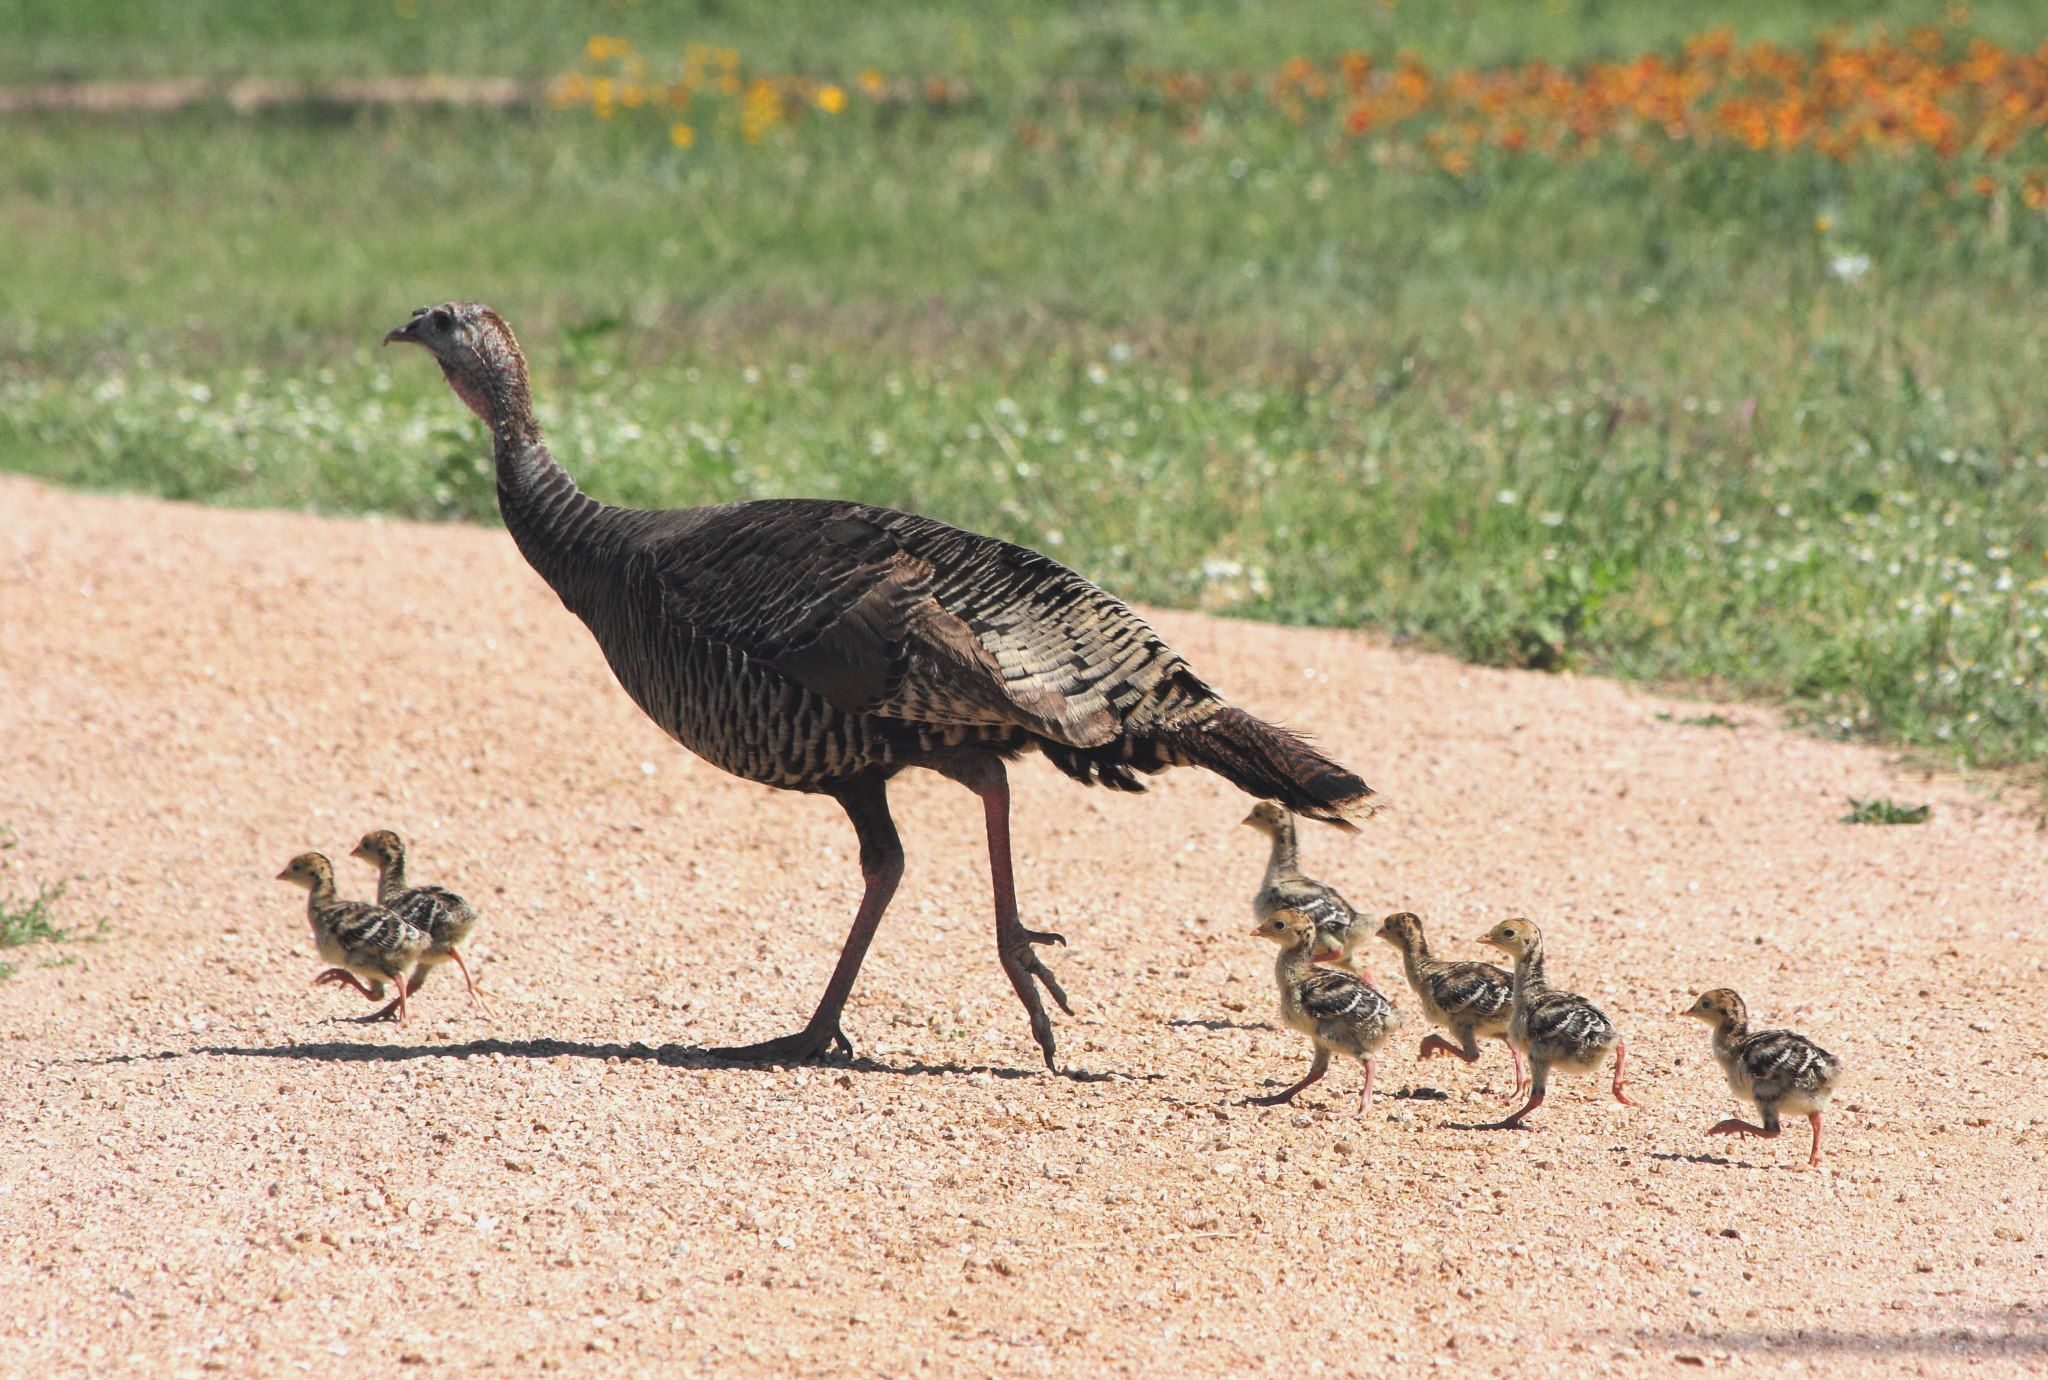 Rio Grande Turkey hen with her poults, walking across the